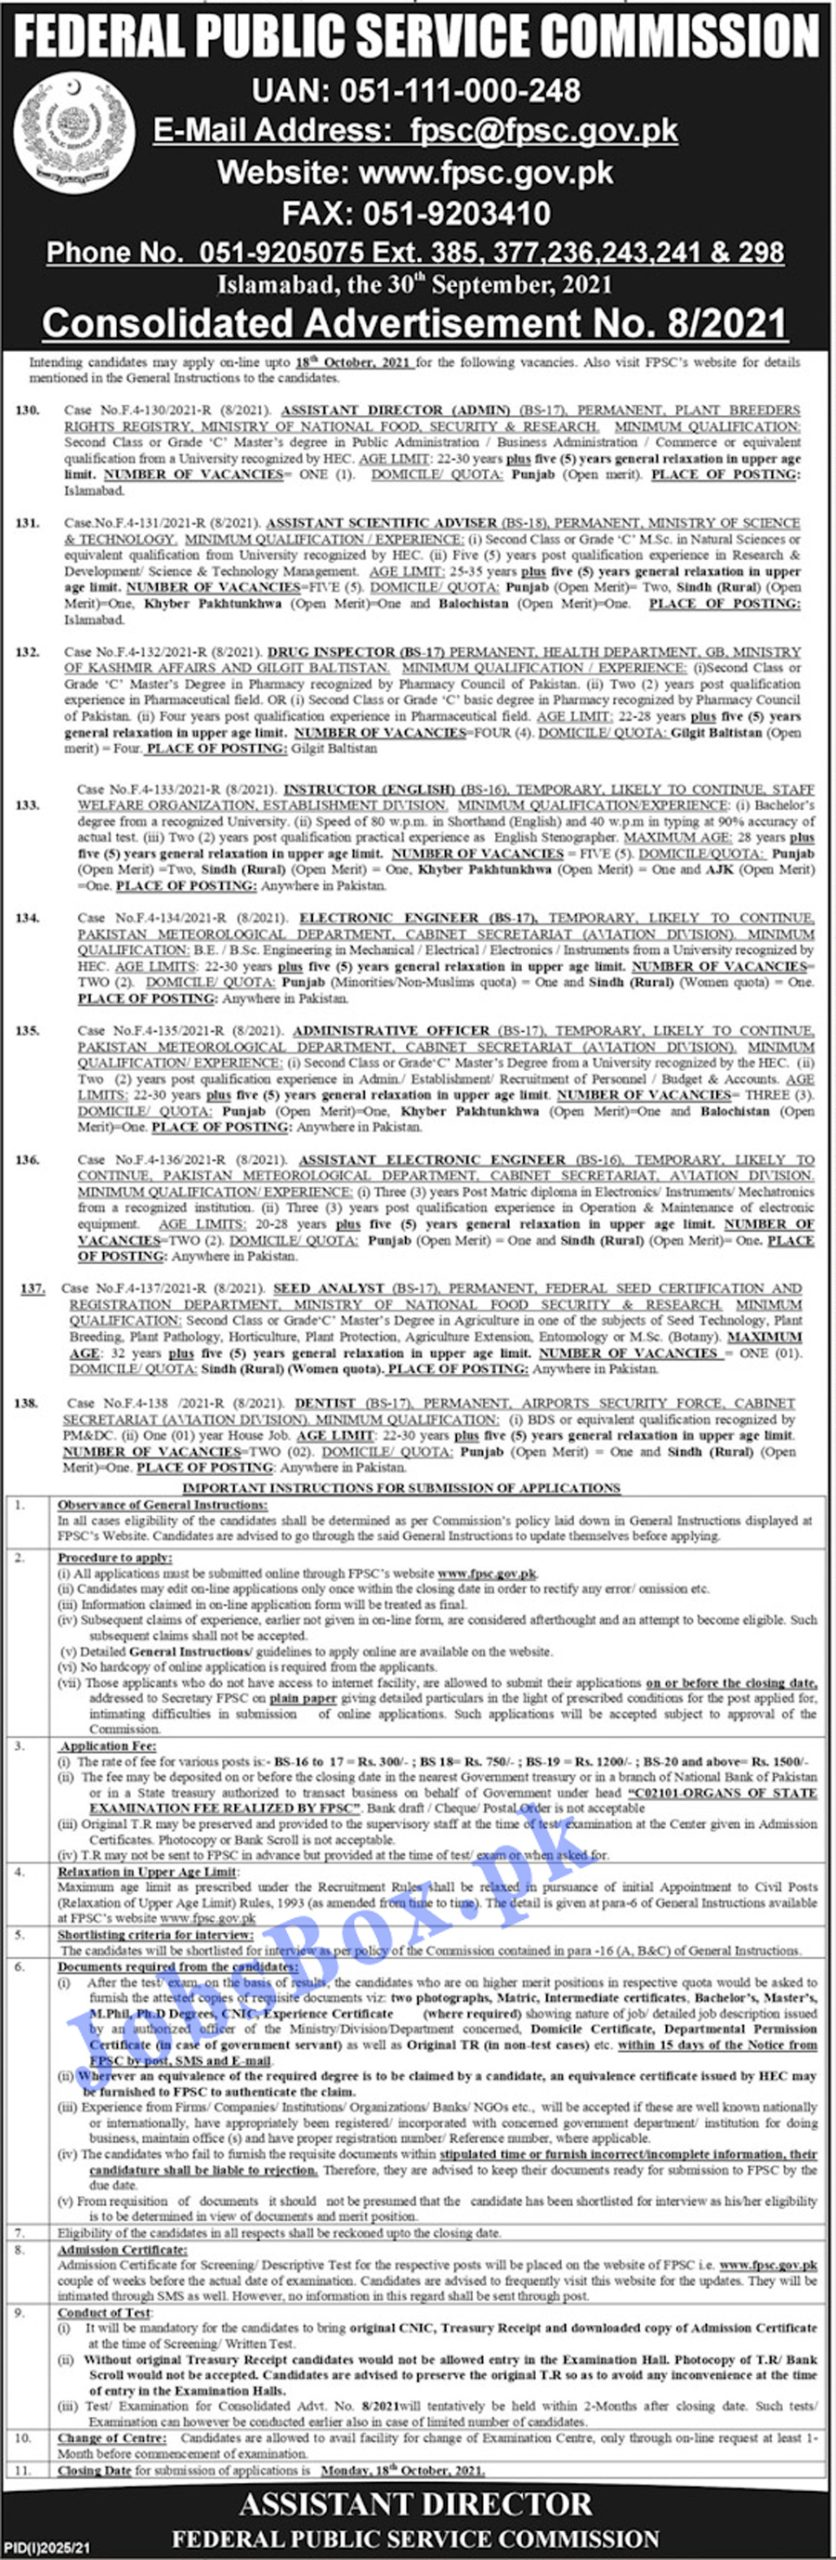 FPSC Jobs 2021 Consolidated Advertisement No. 08 Jobs Opportunities 2021